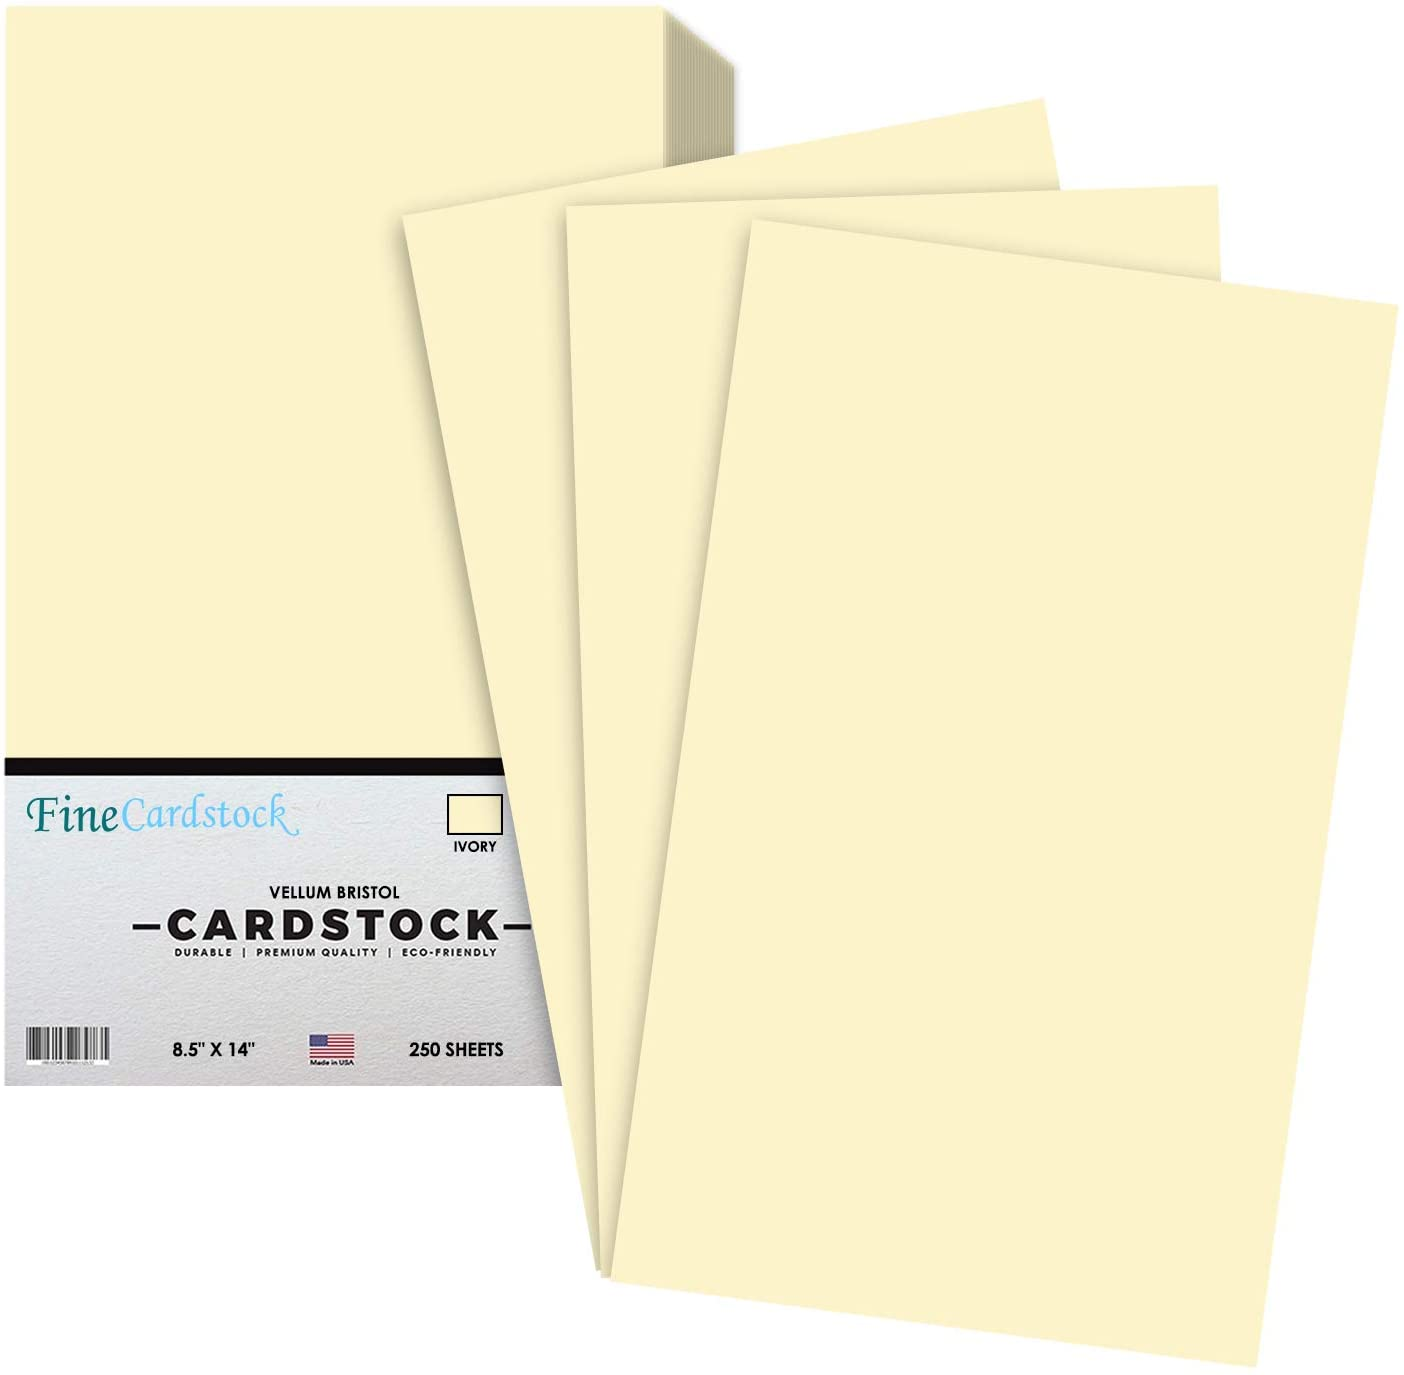 Ivory Menu Legal Size 8.5 x 14 Inches 67 Vellum Bristol Lightweight Card Stock Paper Cover | 1 Ream of 250 Sheets Per Pack